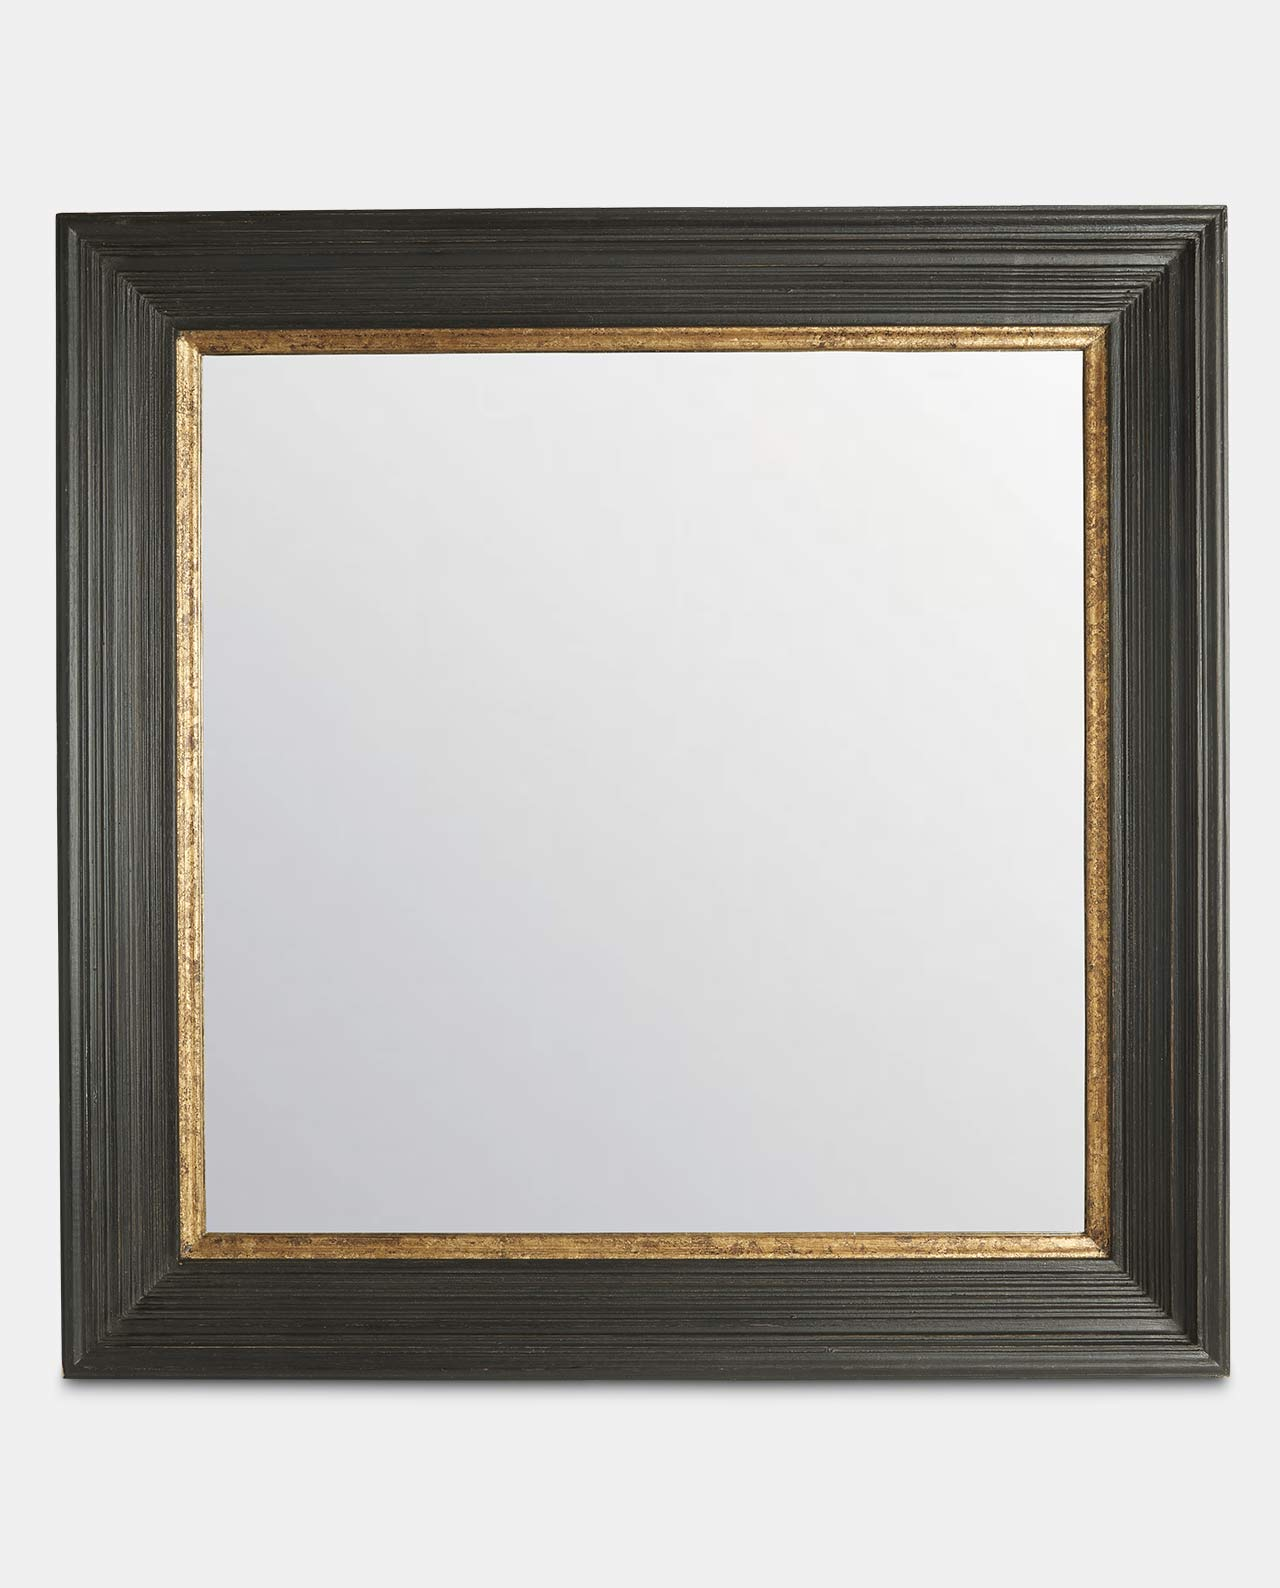 Altair Square Black & Gold Mirror 89cm